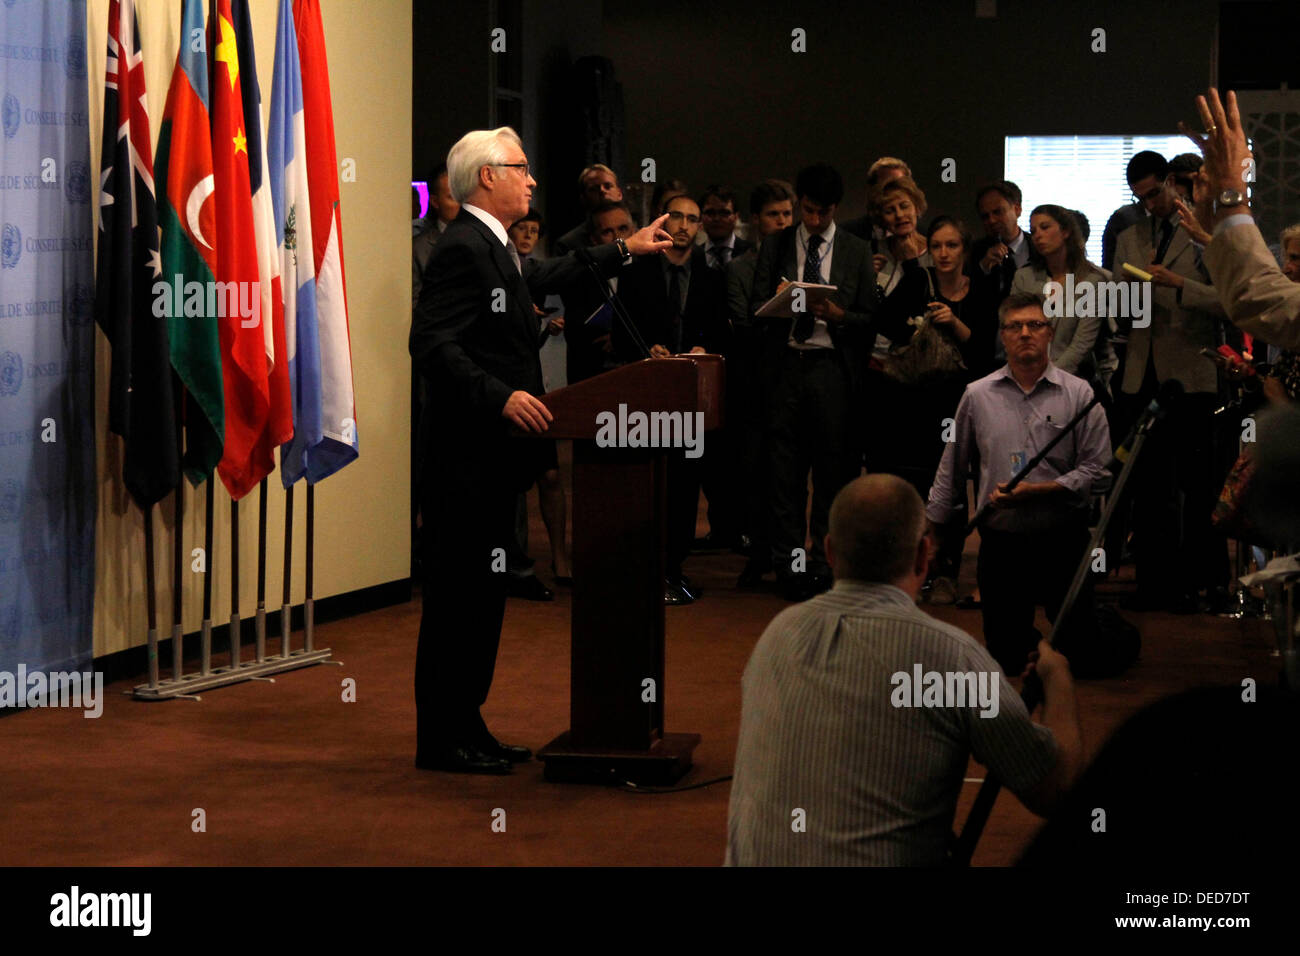 UN Headquarters, NY, NY, USA. 16th Sep, 2013. Russian Ambassador to the United Nations, Vitaly Churkin speaks to the media after a briefing in the Security Council on a U.N. report on the use of chemical weapons in Syria, at U.N. Headquarters in New York, Monday September 16, 2013.  photo: Trevor Collens © Trevor Collens/Alamy Live News - Stock Image